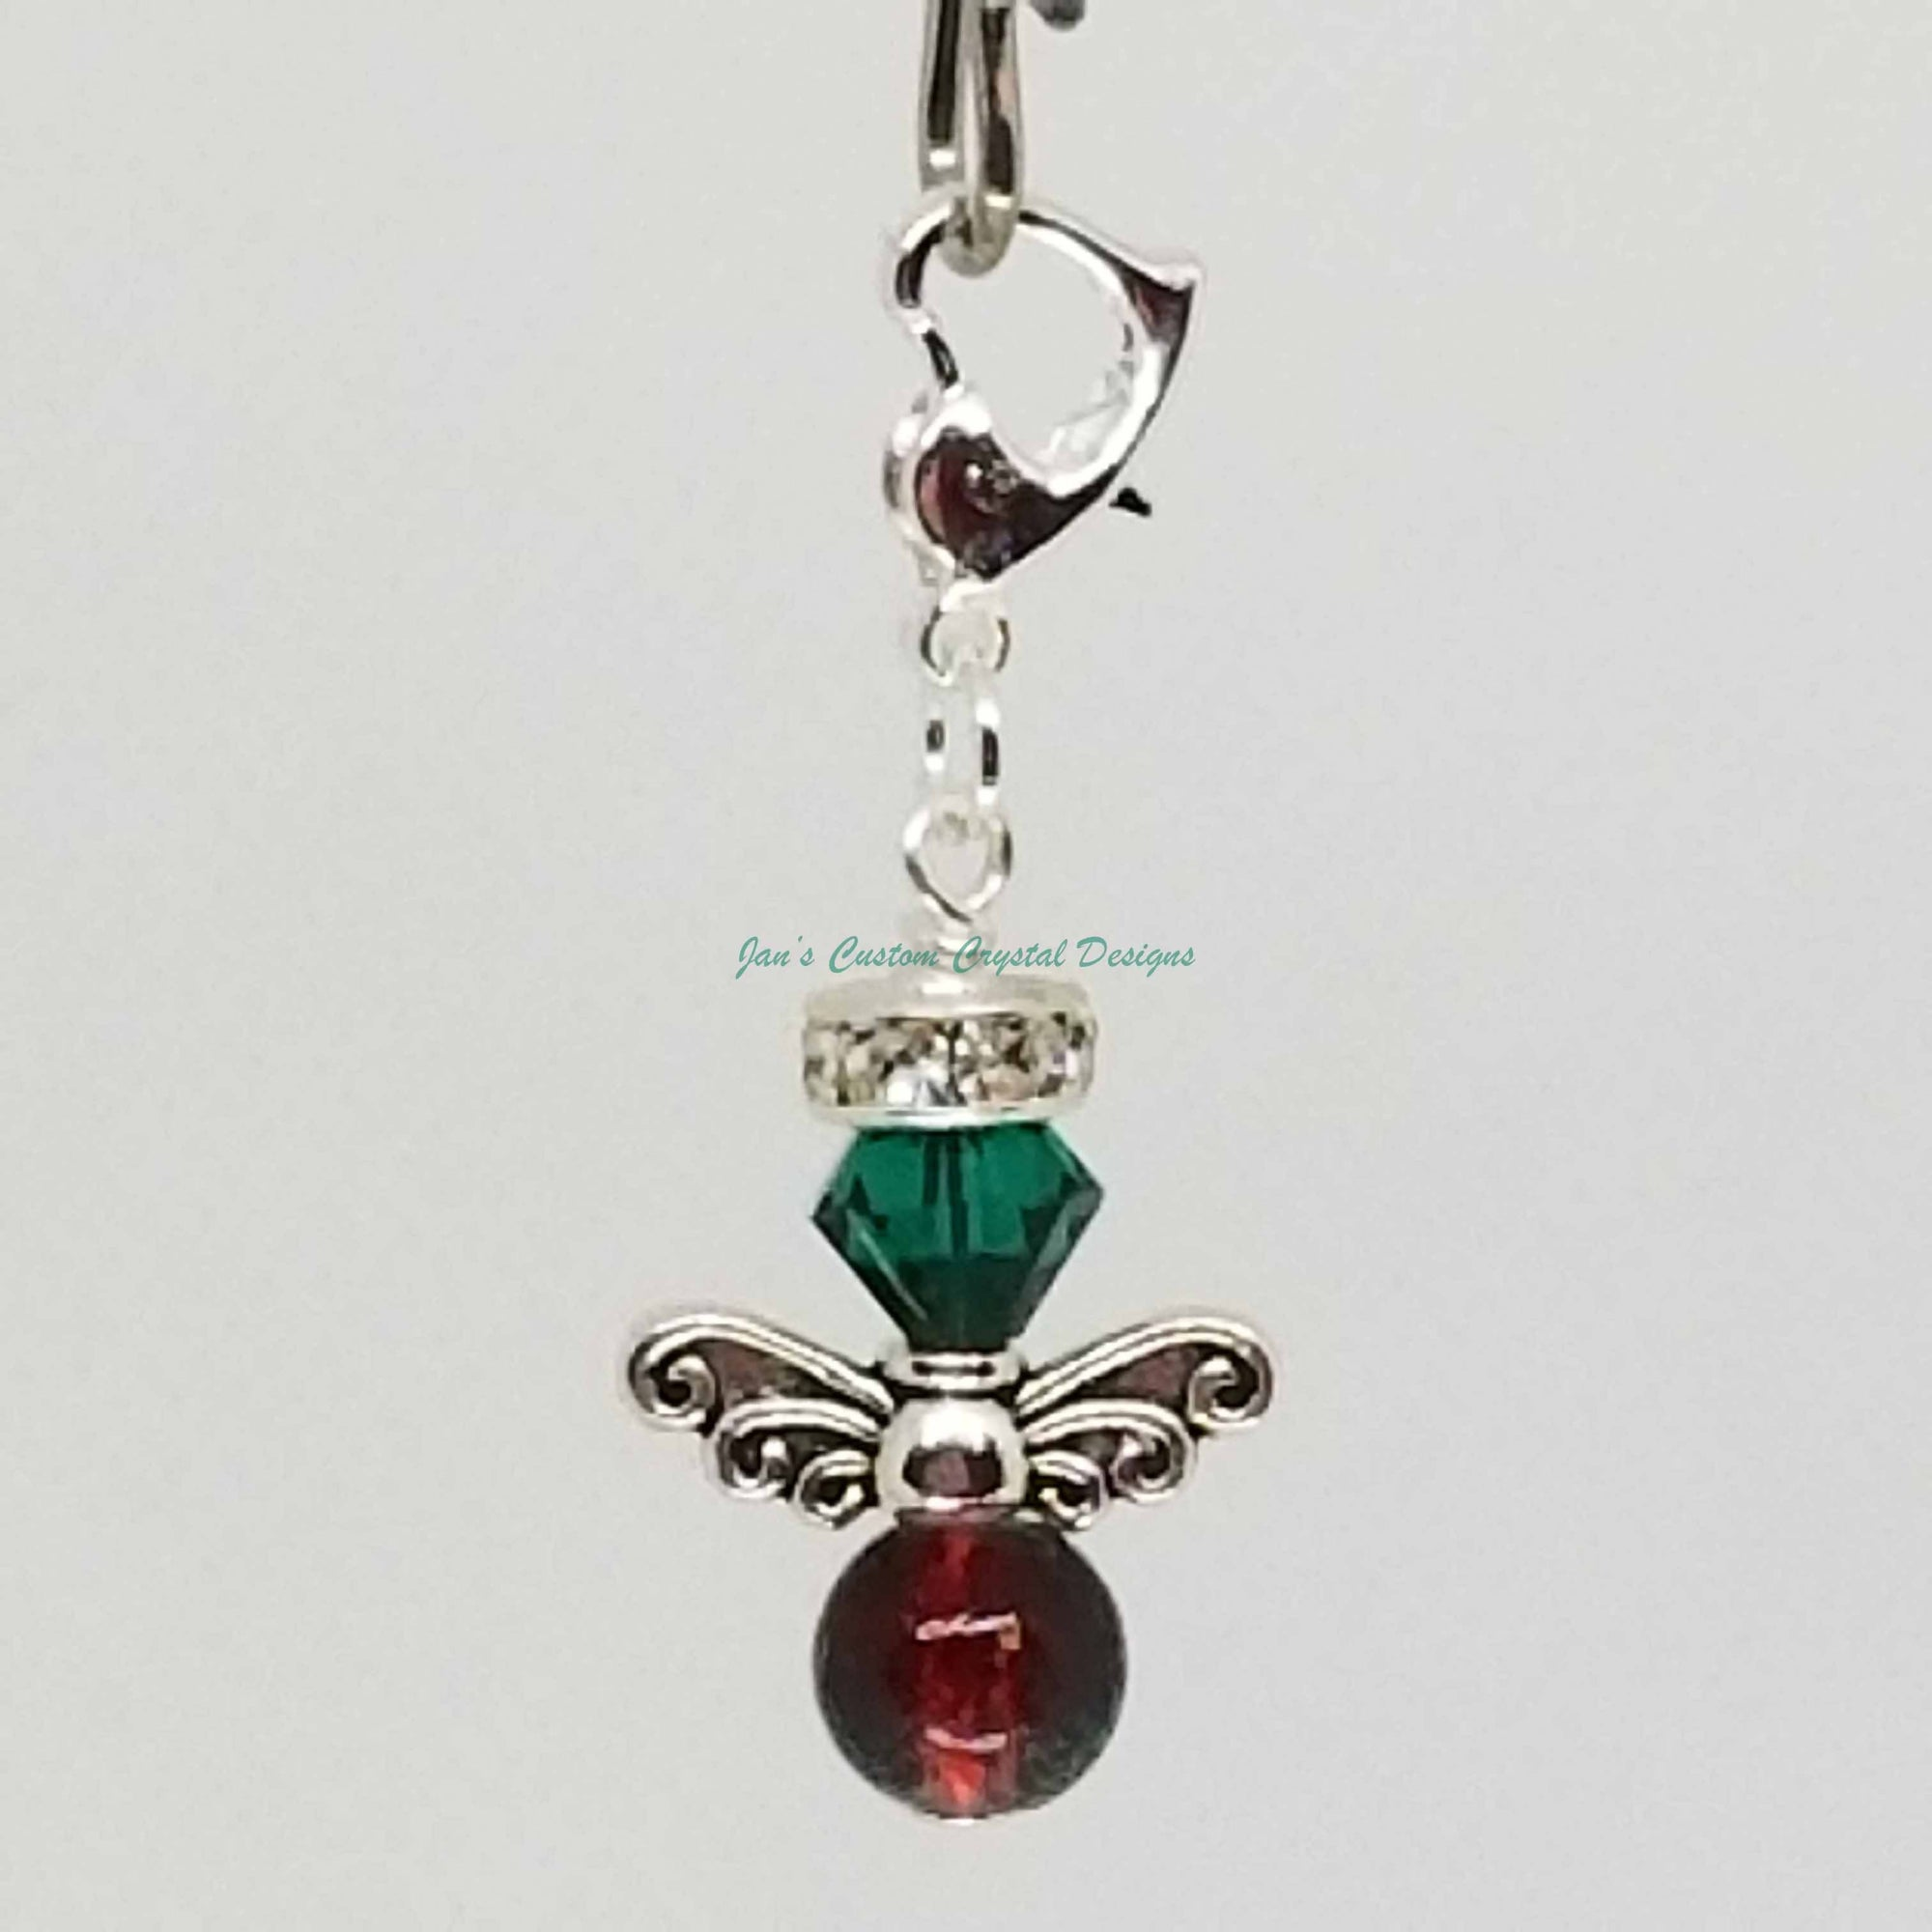 Candy Drop Angel - Swarovski® Crystal and Crackle Glass Bead Zipper Pull - Emerald Green